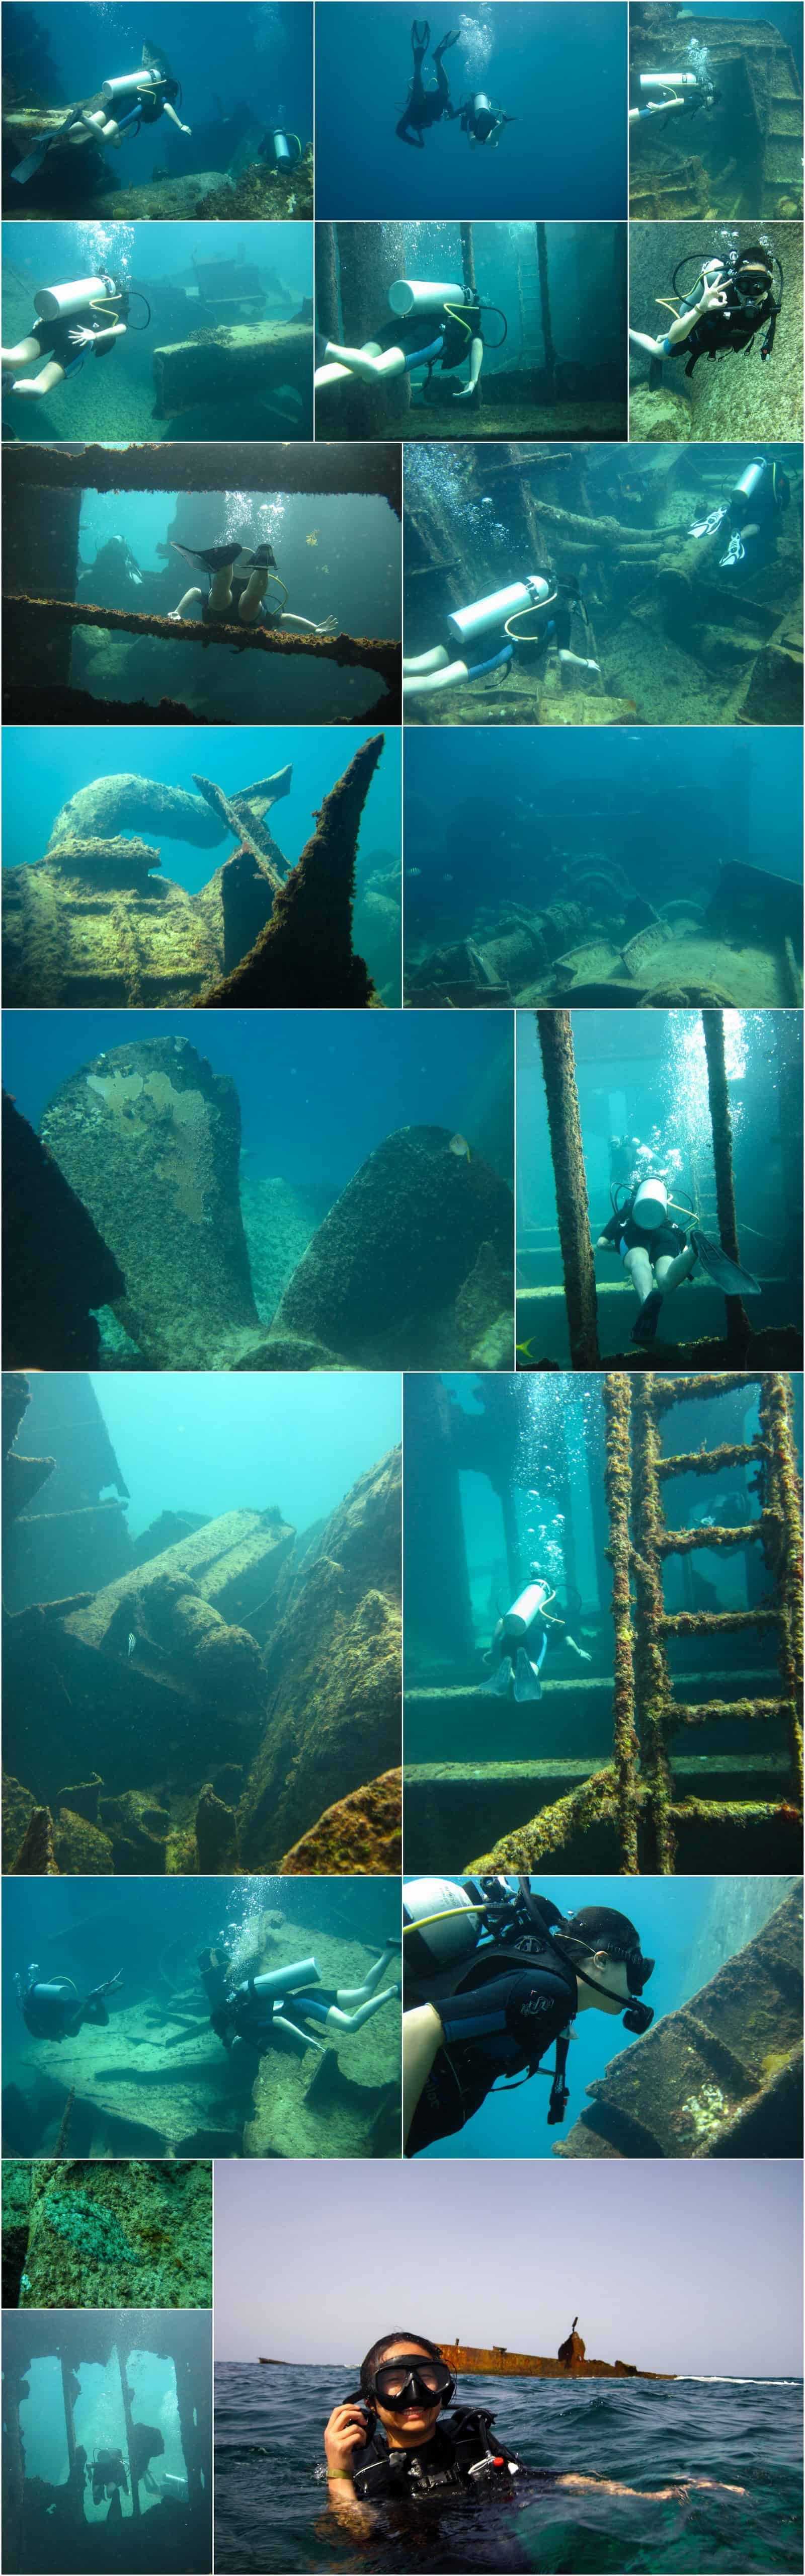 mosaic of phots from the astron wreck dive with seapro divers in punta cana dominican republic